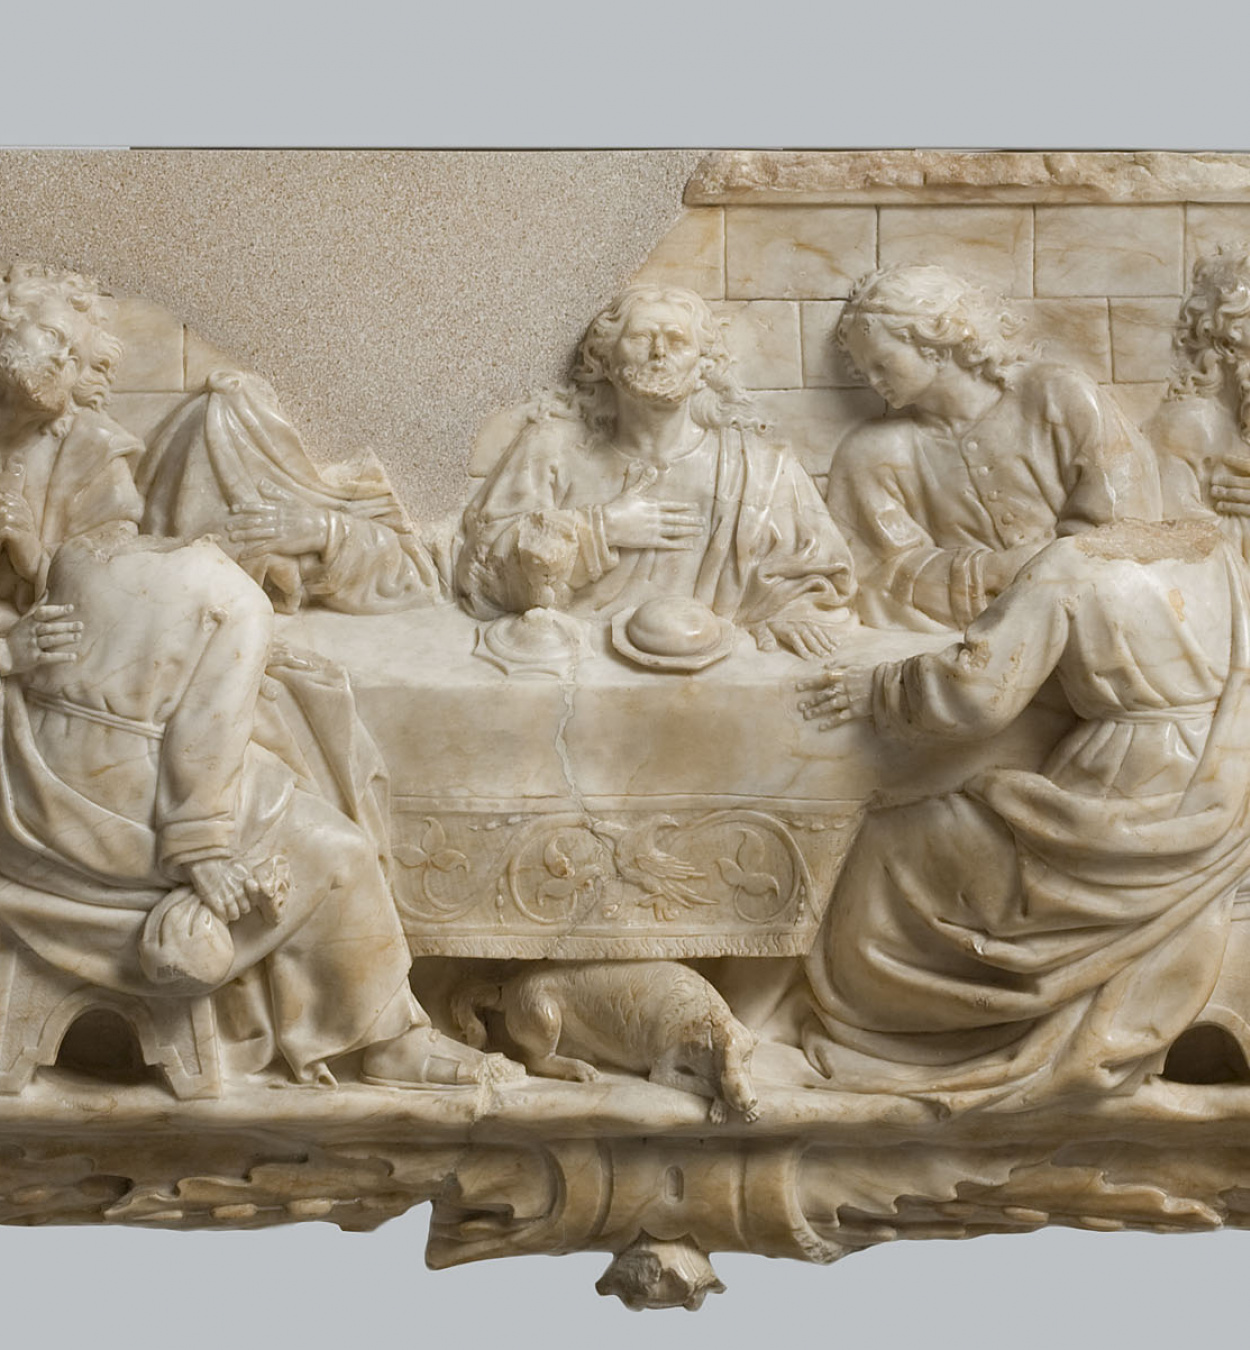 Isidre Espinalt - Last Supper - 1695